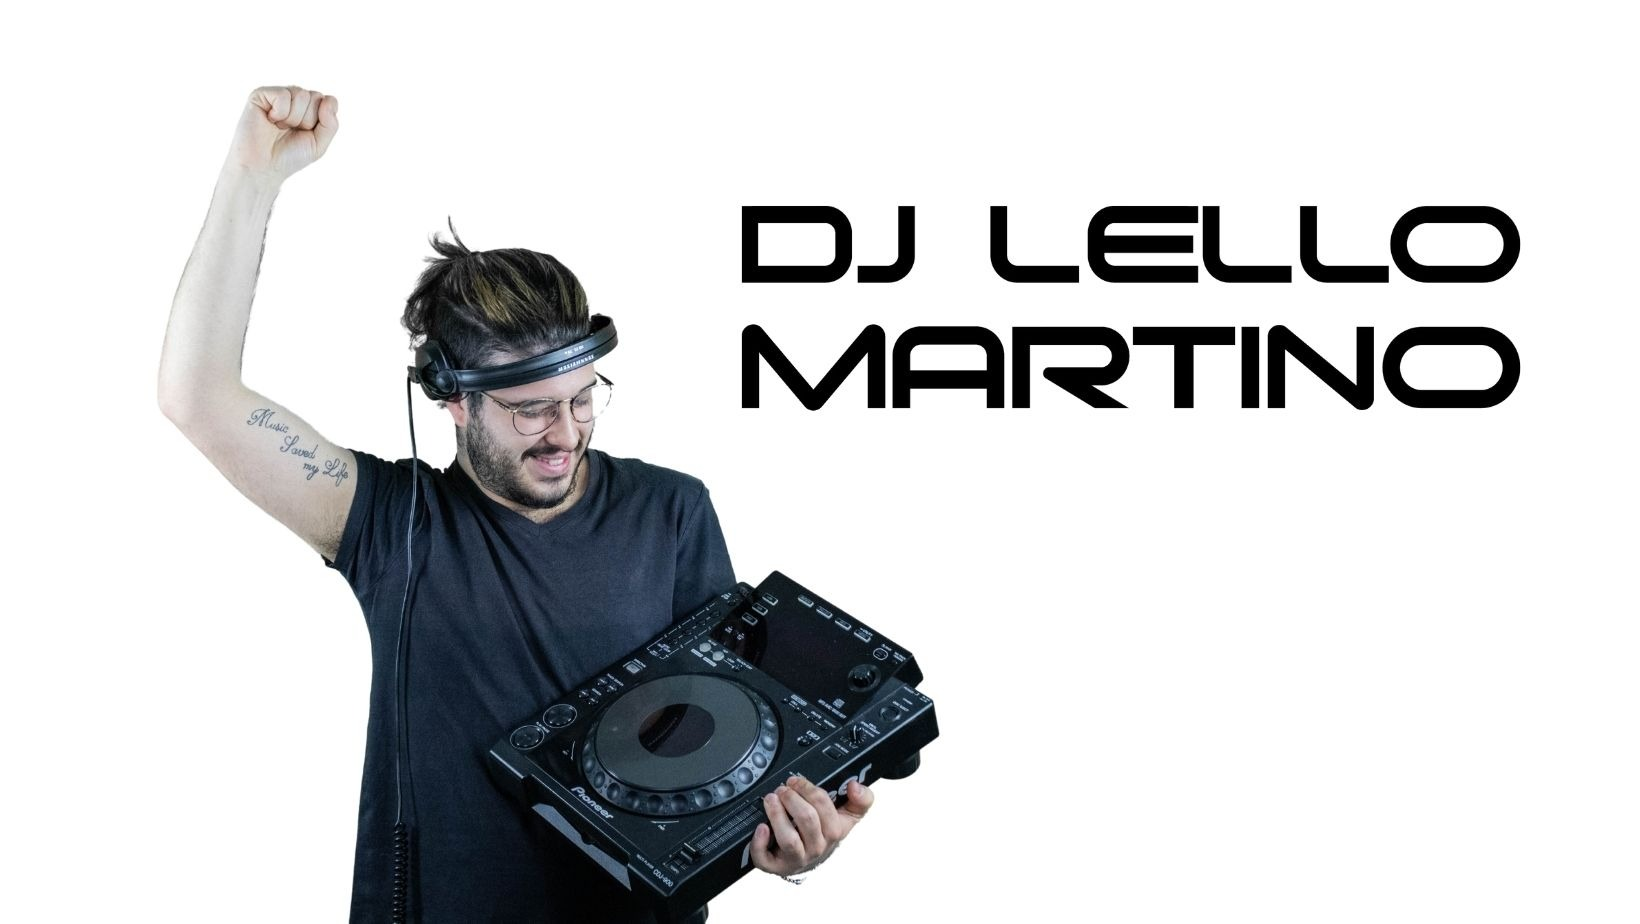 Dj Lello Martino